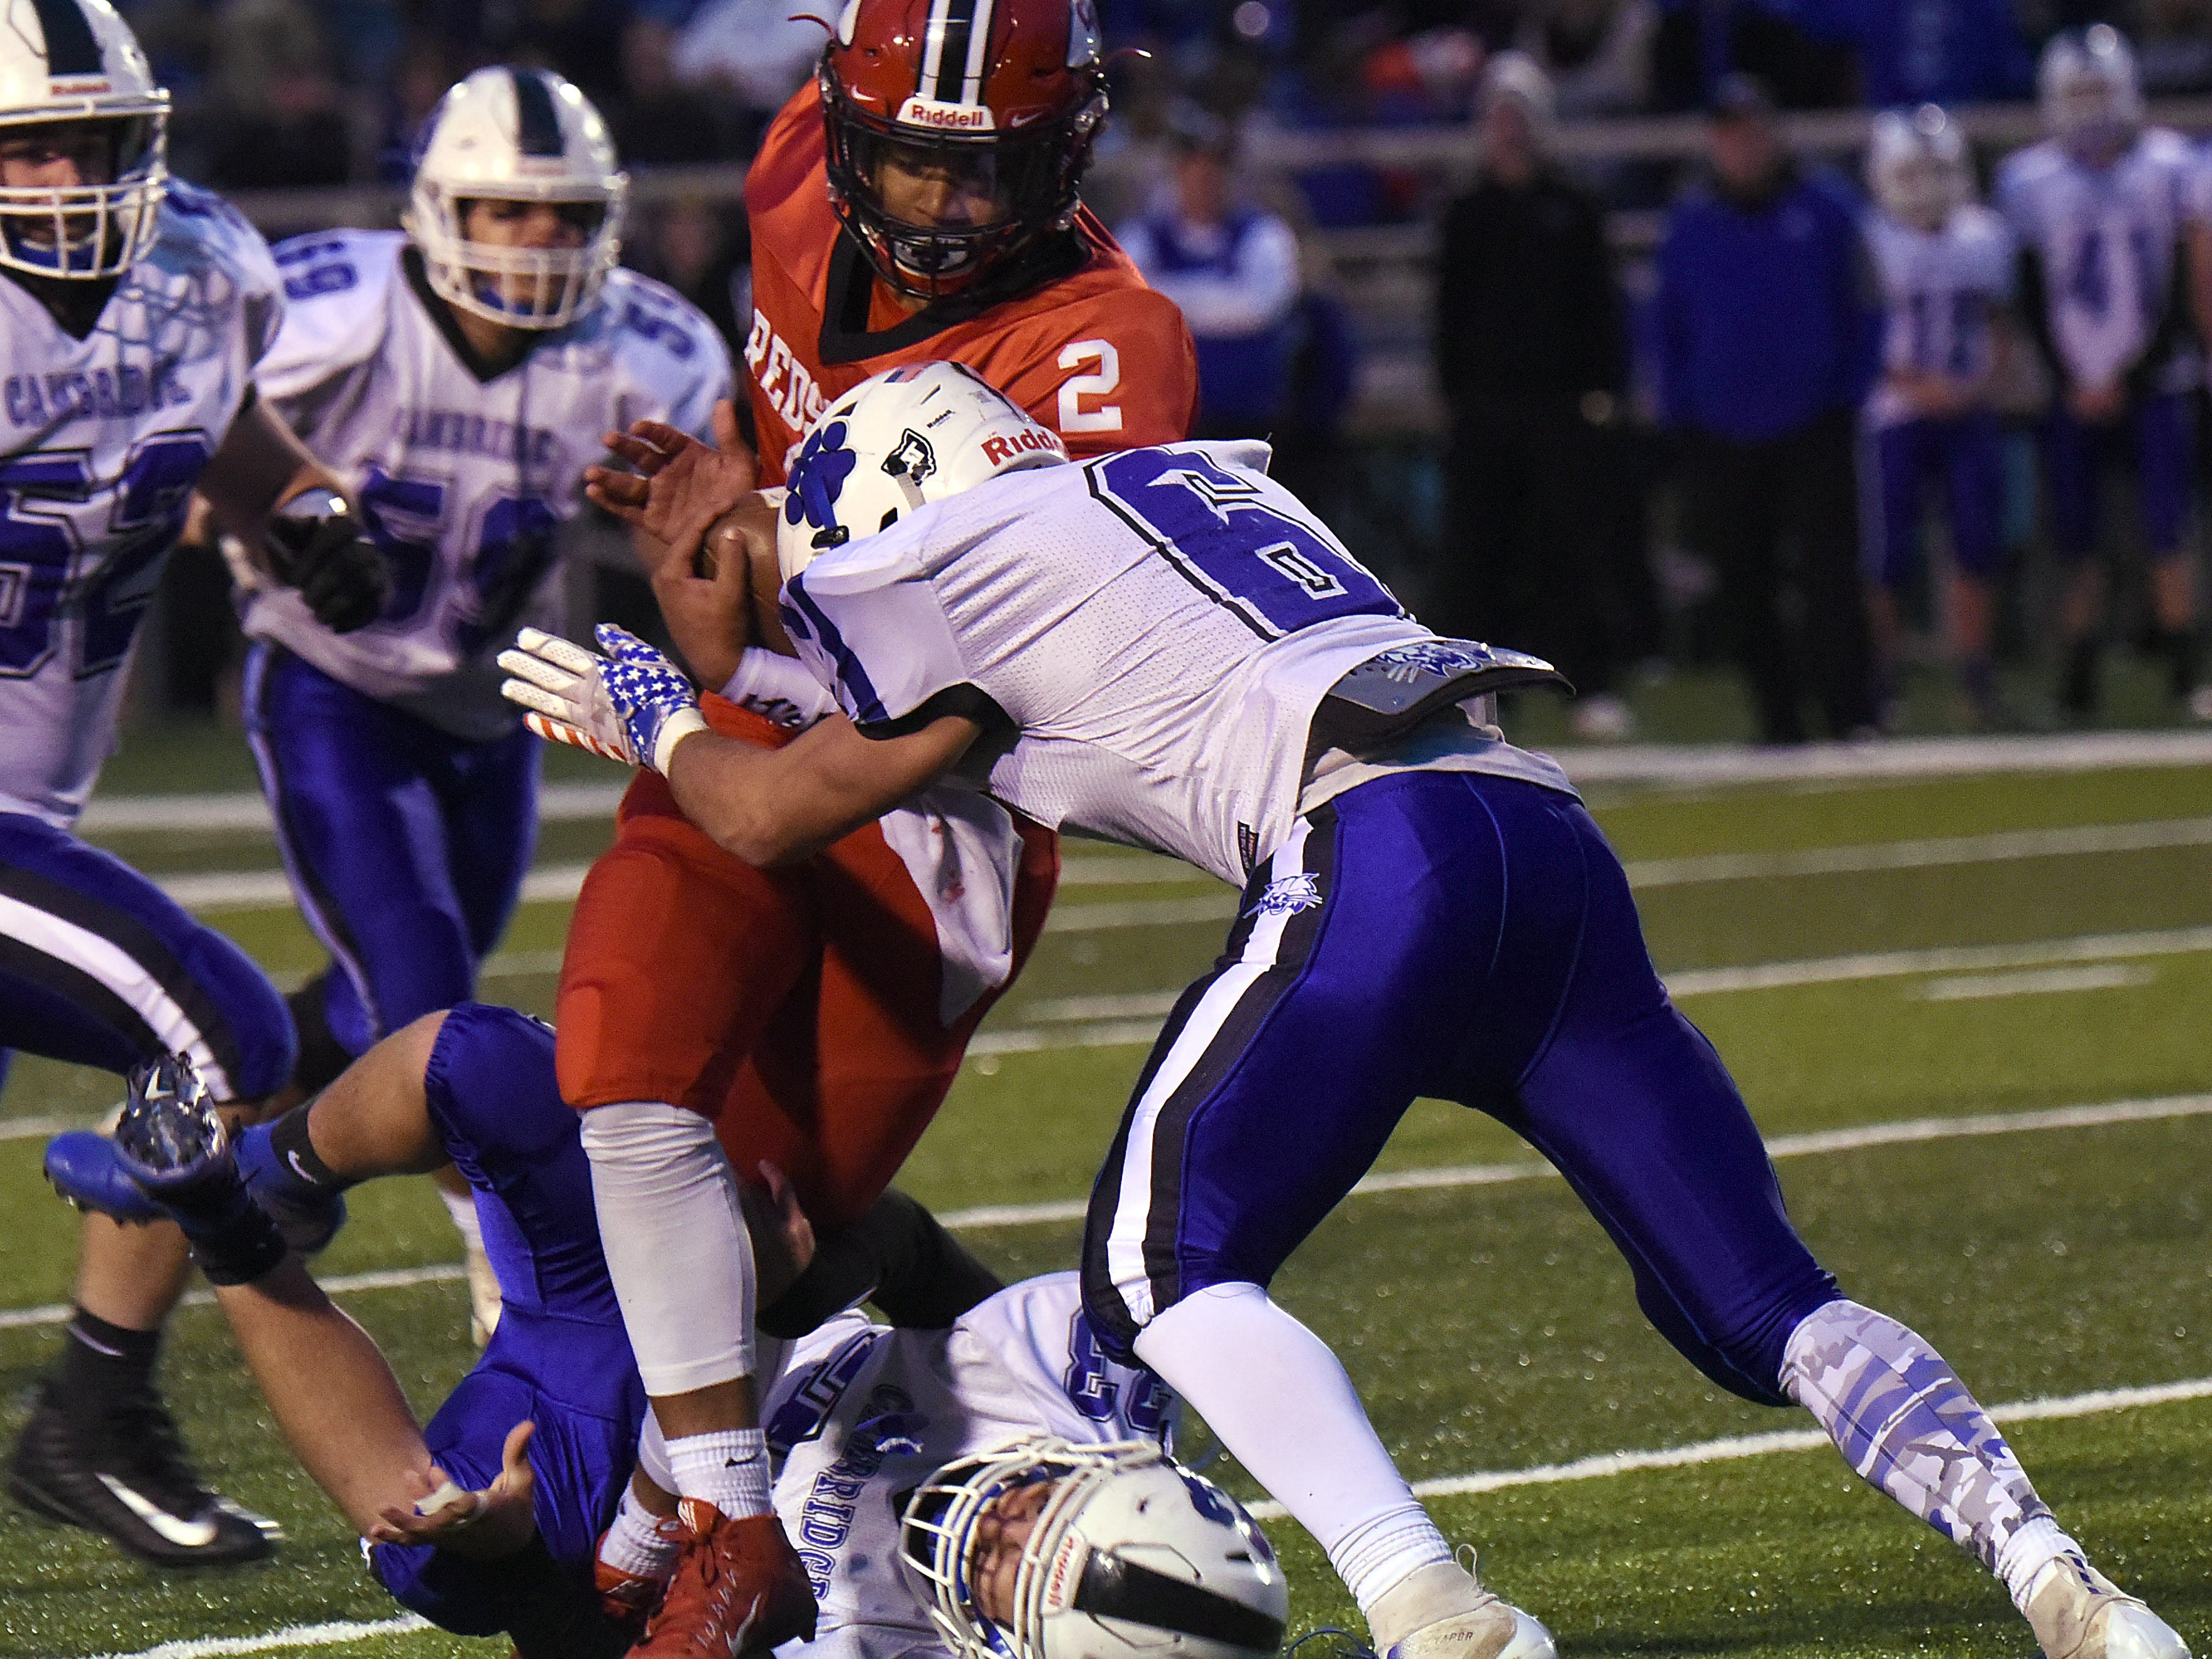 Coshocton junior Cameron Johns is brought down by Cambridge defenders Kaden Kenworthy and Logan Tuttle during their homecoming game on Friday, Oct. 12, 2018. Coshocton lost 33-22.